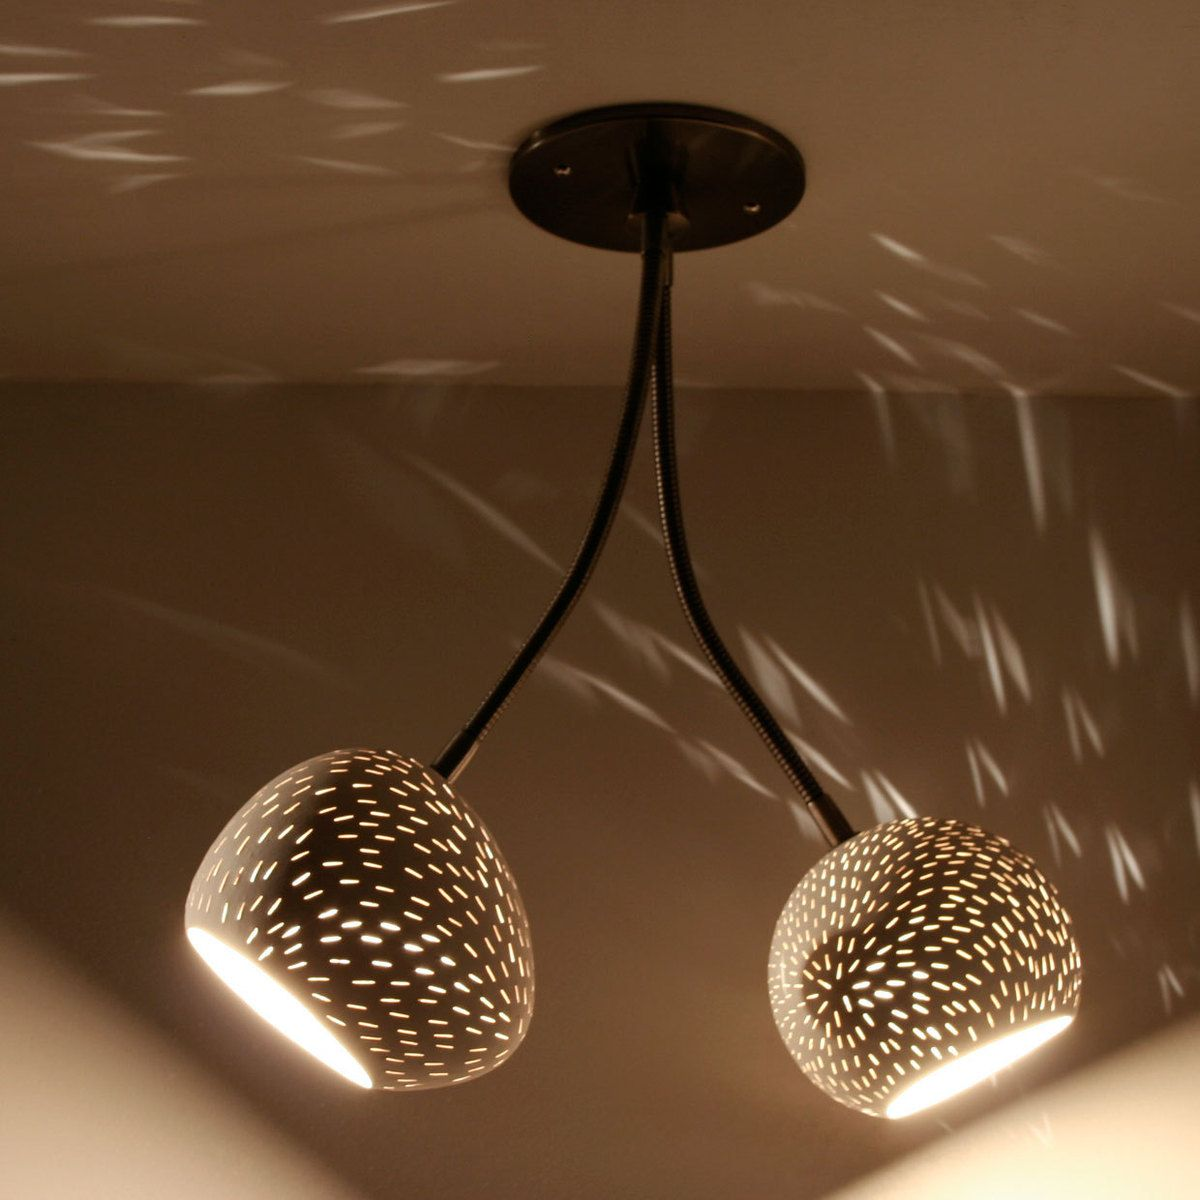 Claylight bylightexture on fab lights pinterest lights claylight bylightexture on fab arubaitofo Images